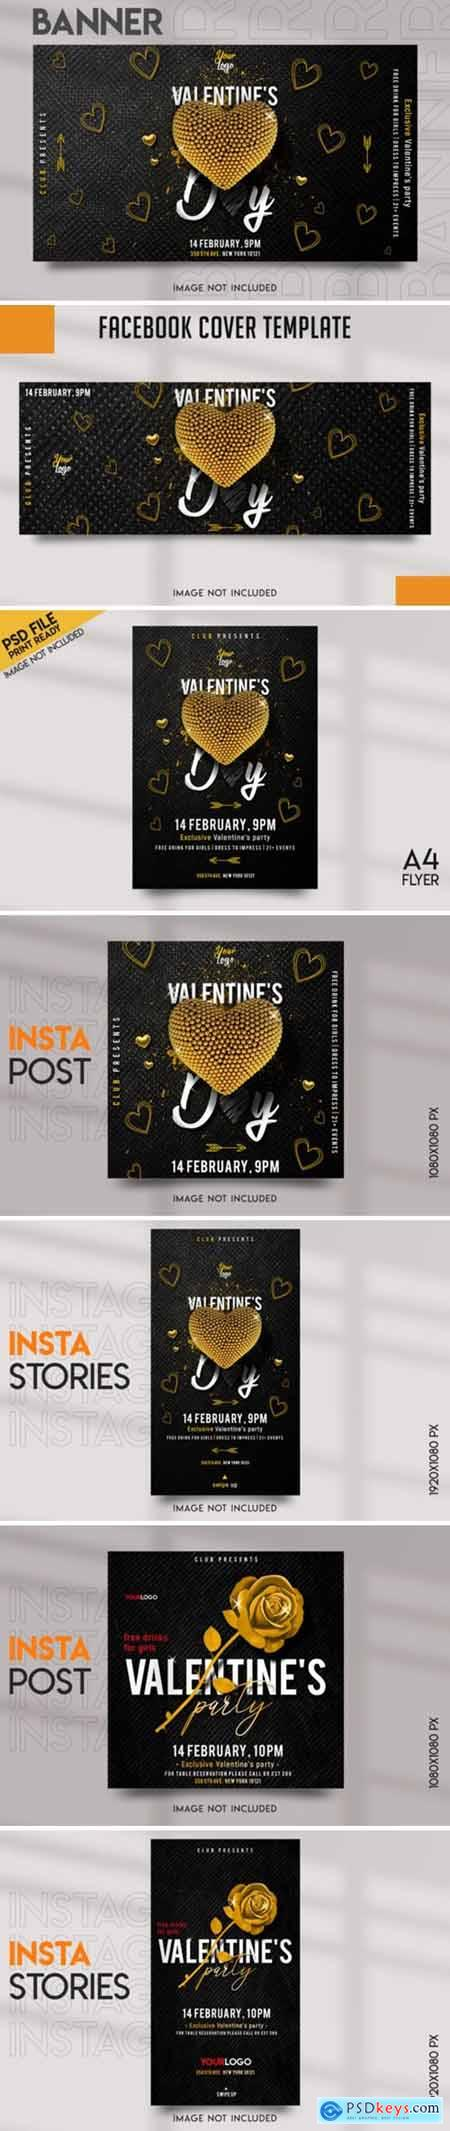 Valentines Party Social Media Template